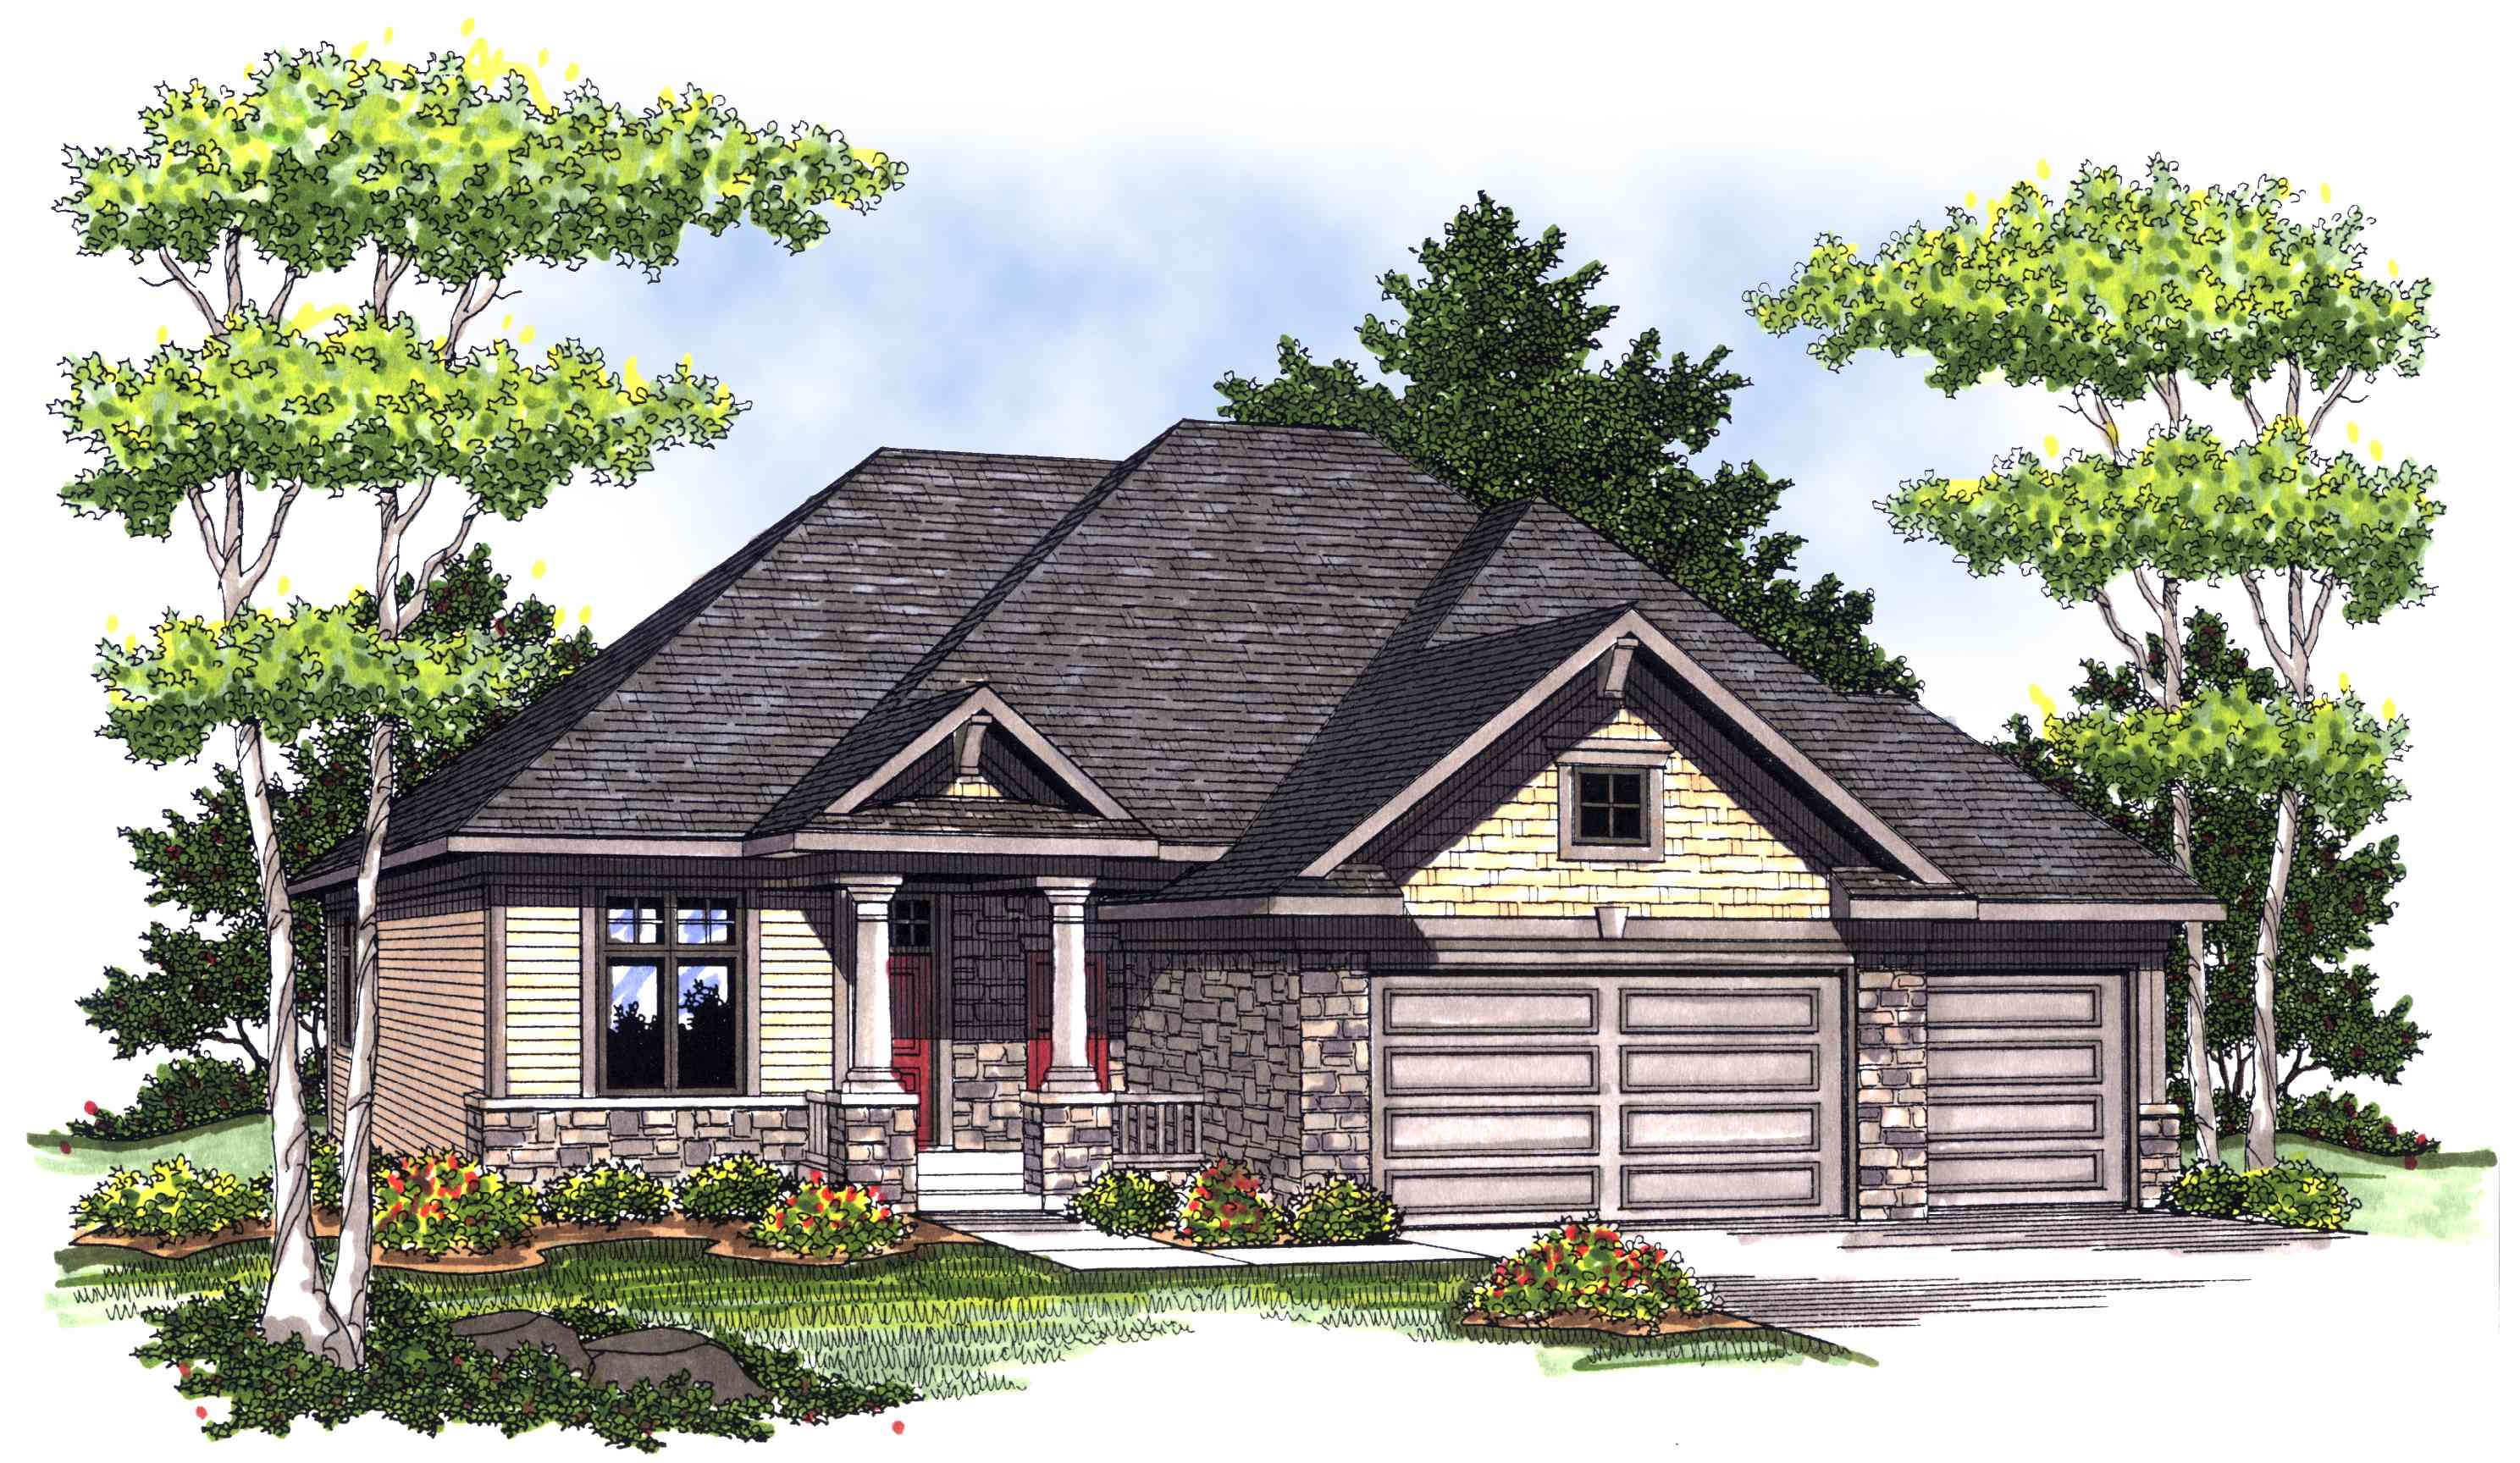 European inspired ranch 89222ah architectural designs for Reverse ranch house plans